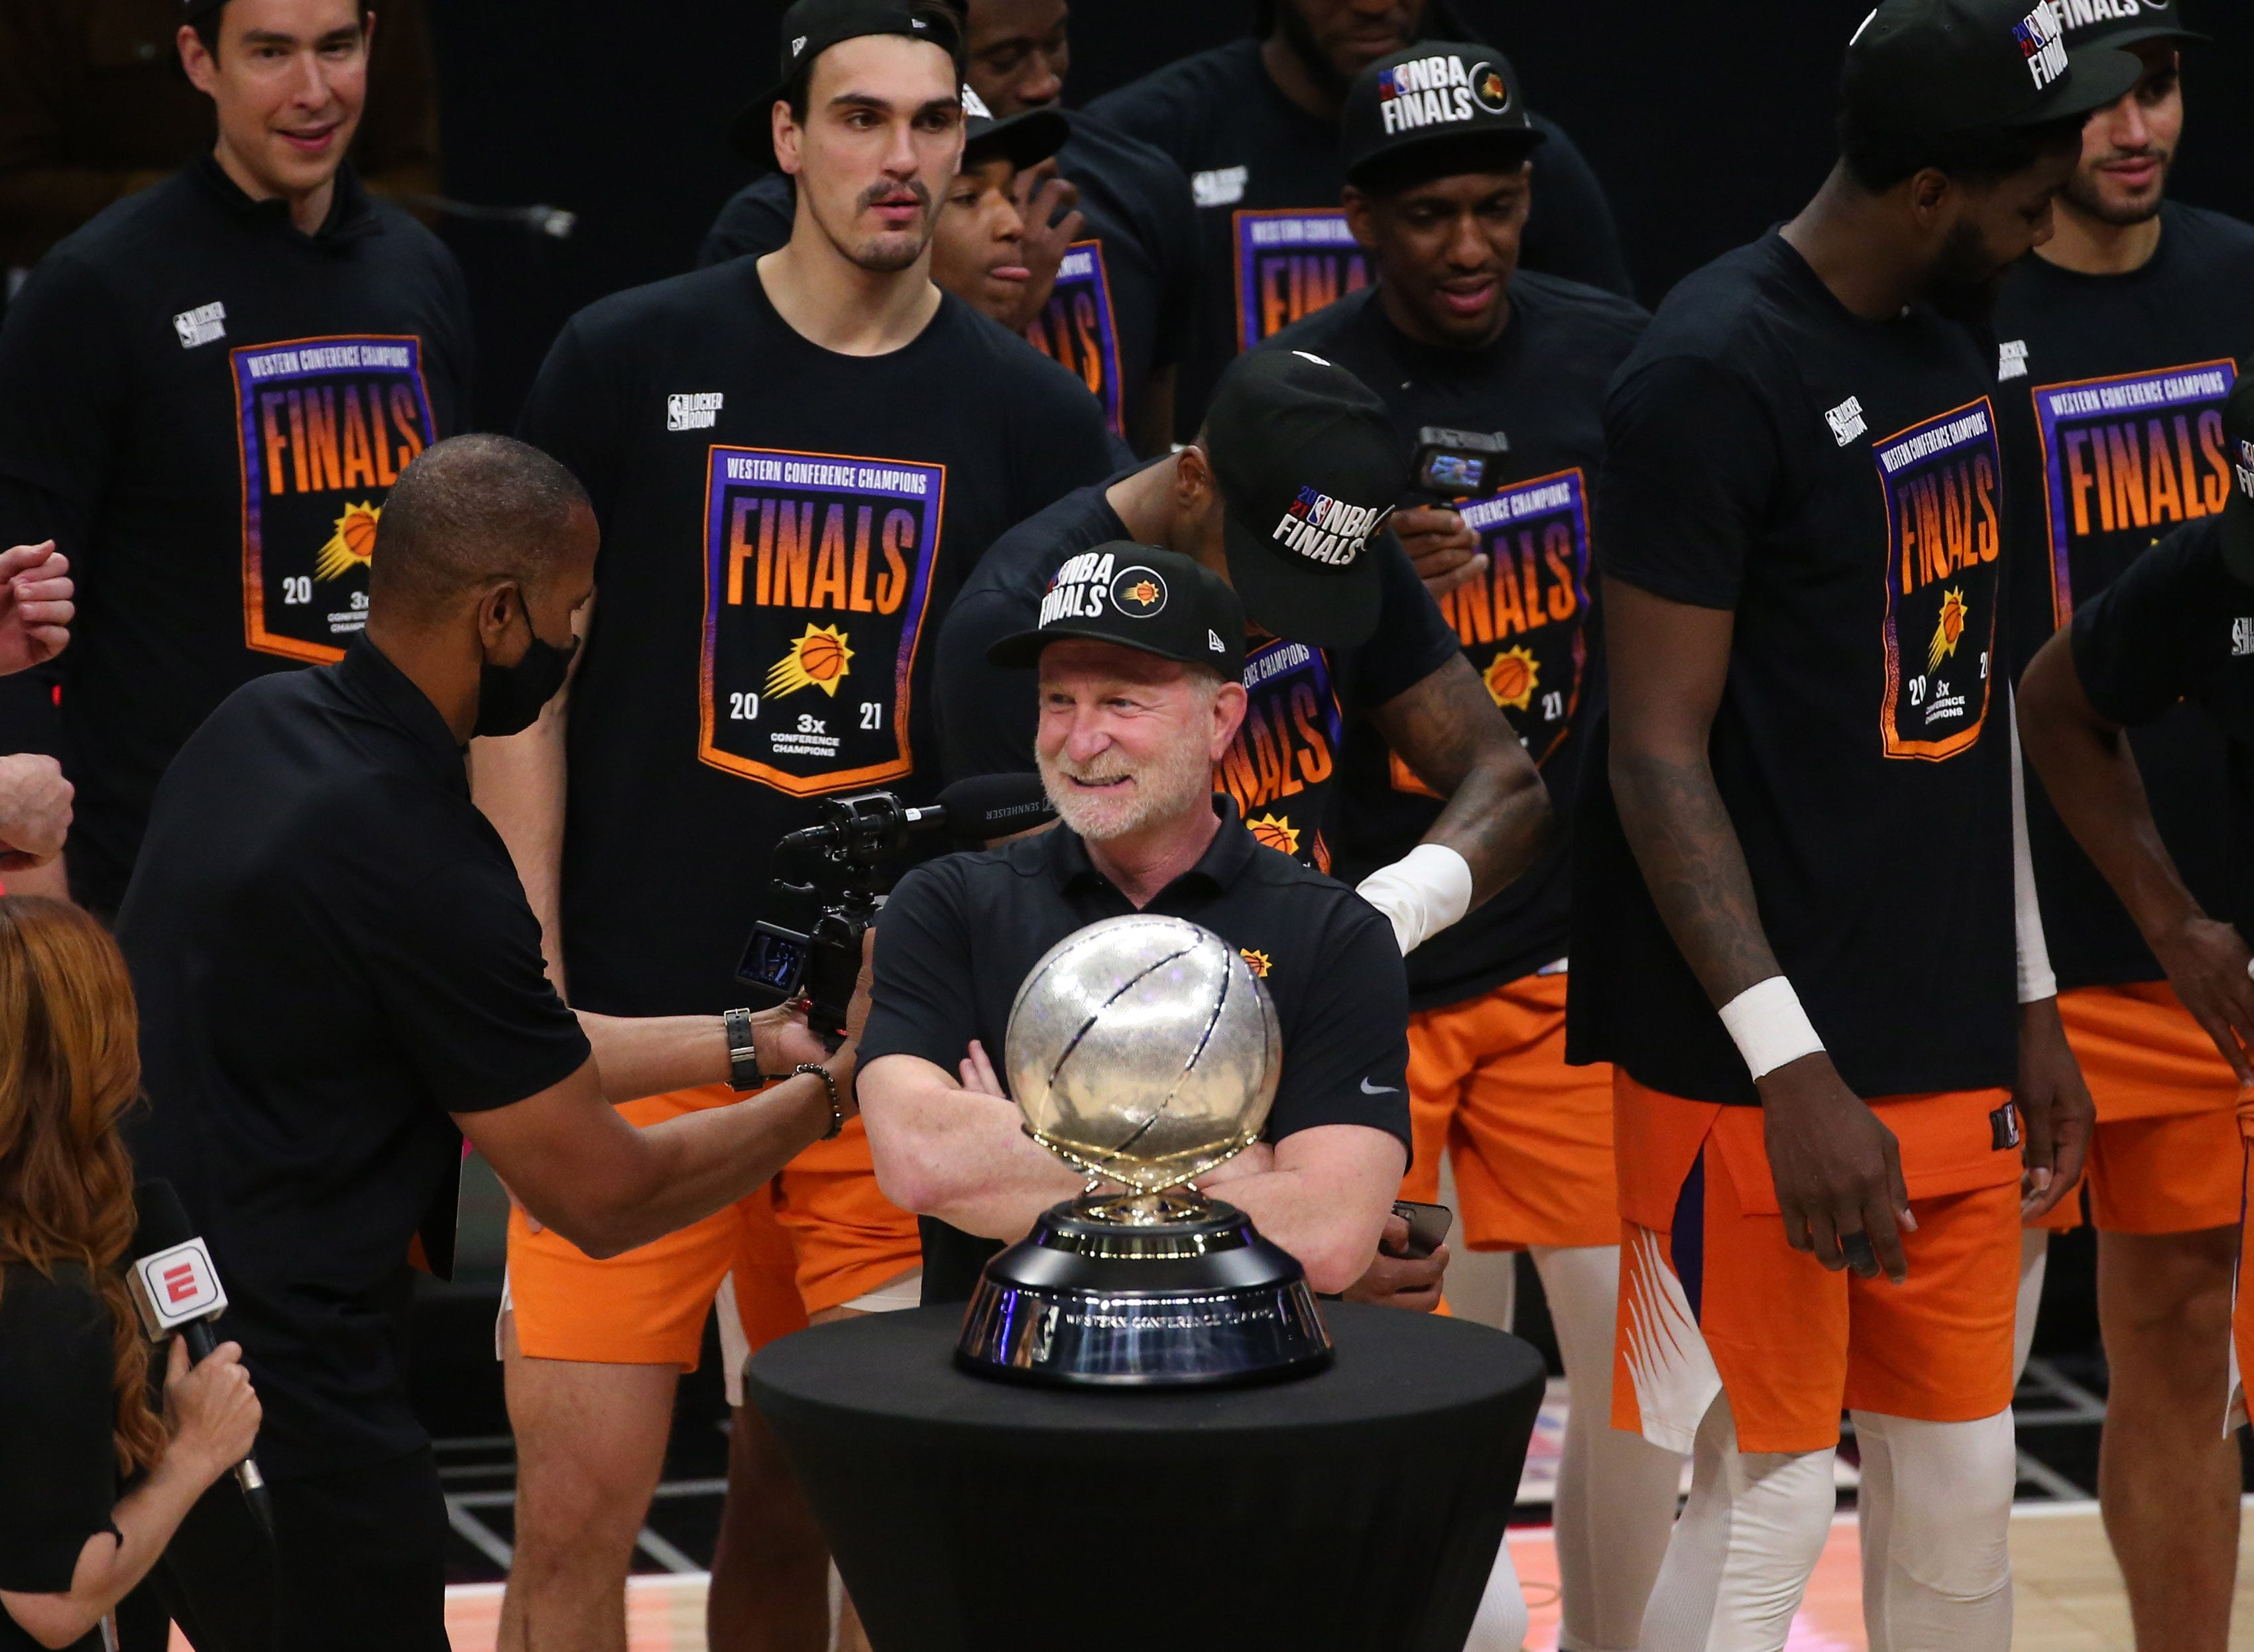 Phoenix Suns owner Robert Sarver  wholly shocked  by allegations of racism, sexism